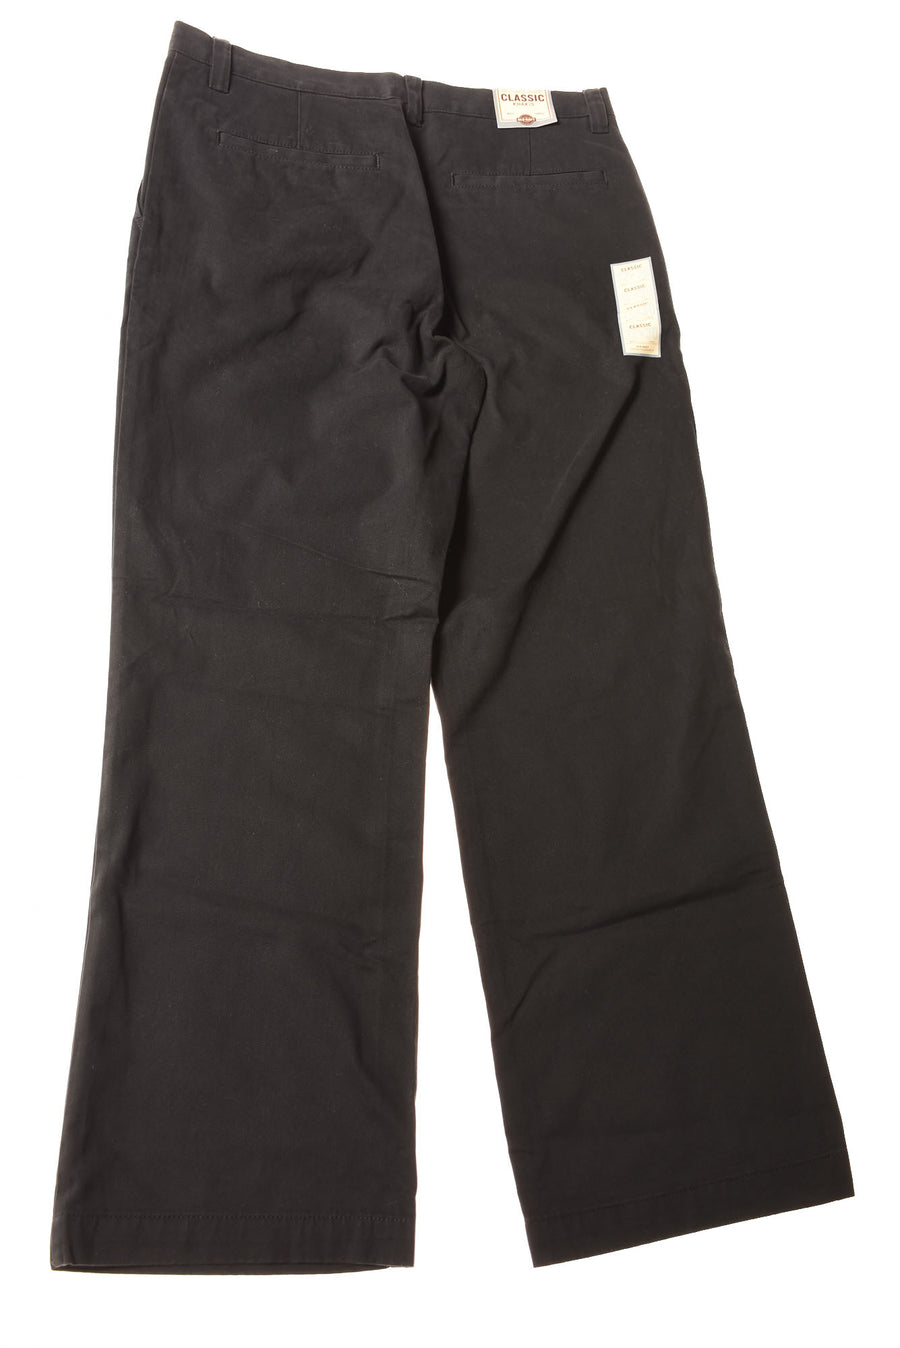 NEW Old Navy Men's Slacks 32x30 Black